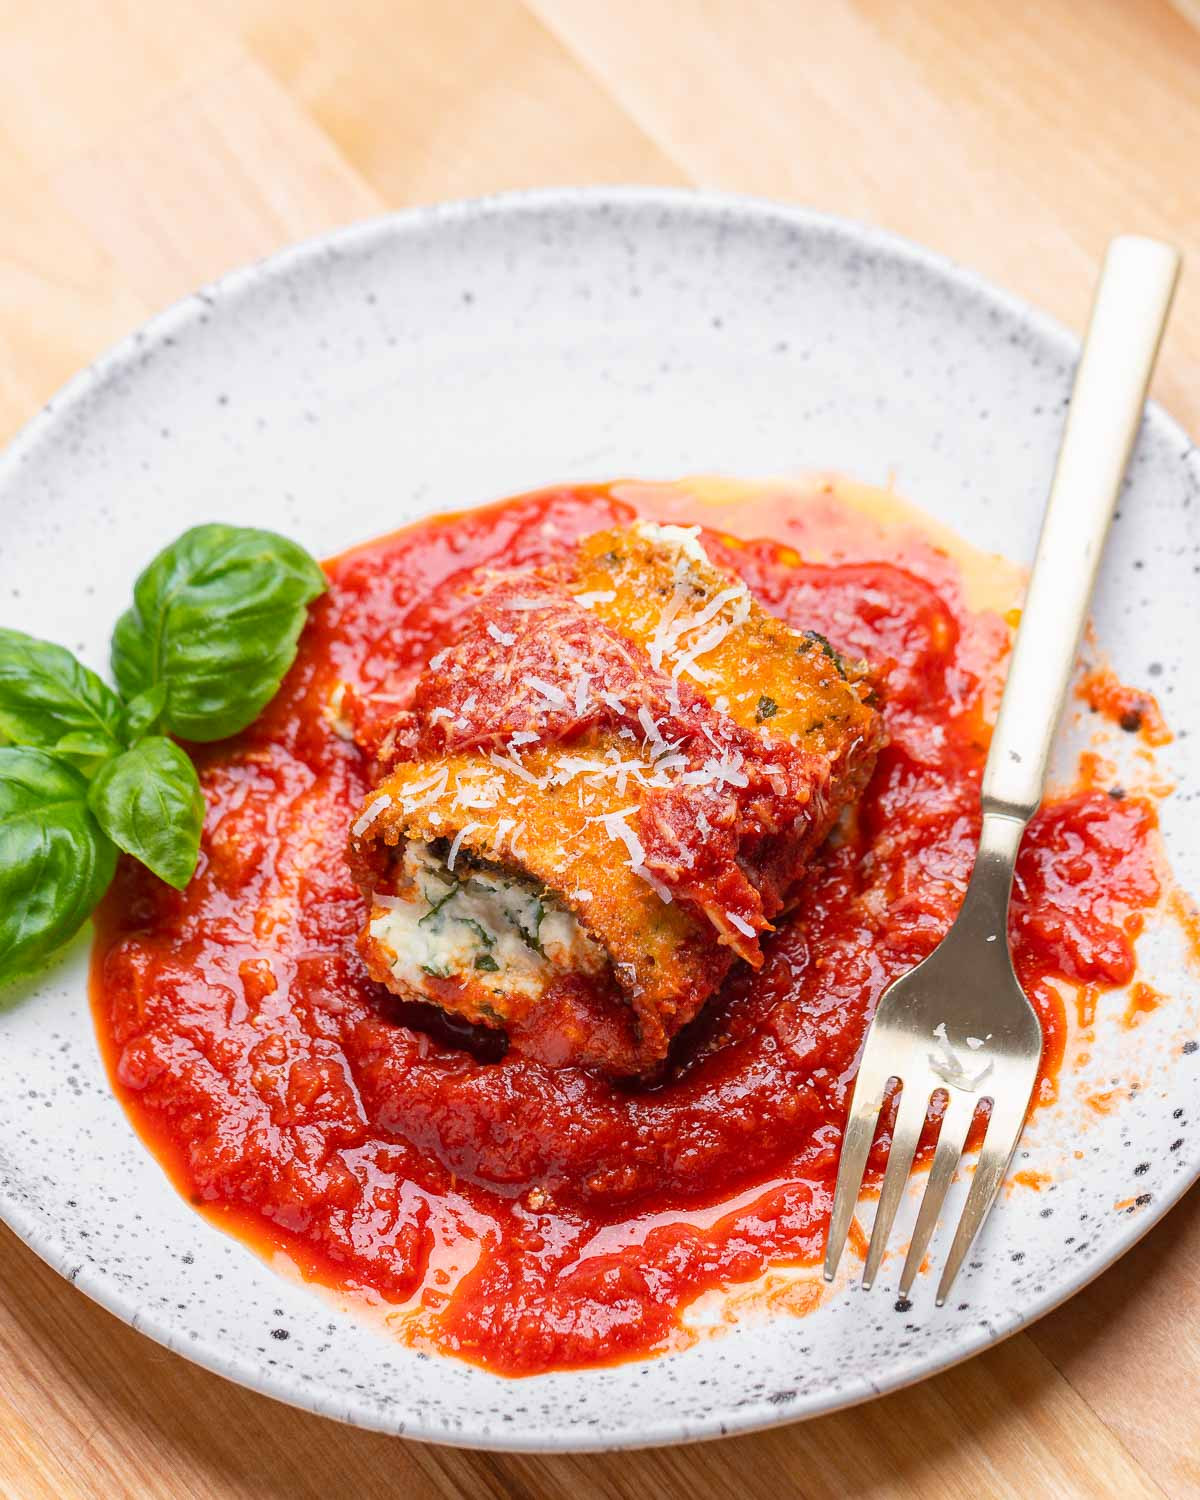 White plate with one eggplant rollatini, basil leaves, and fork.